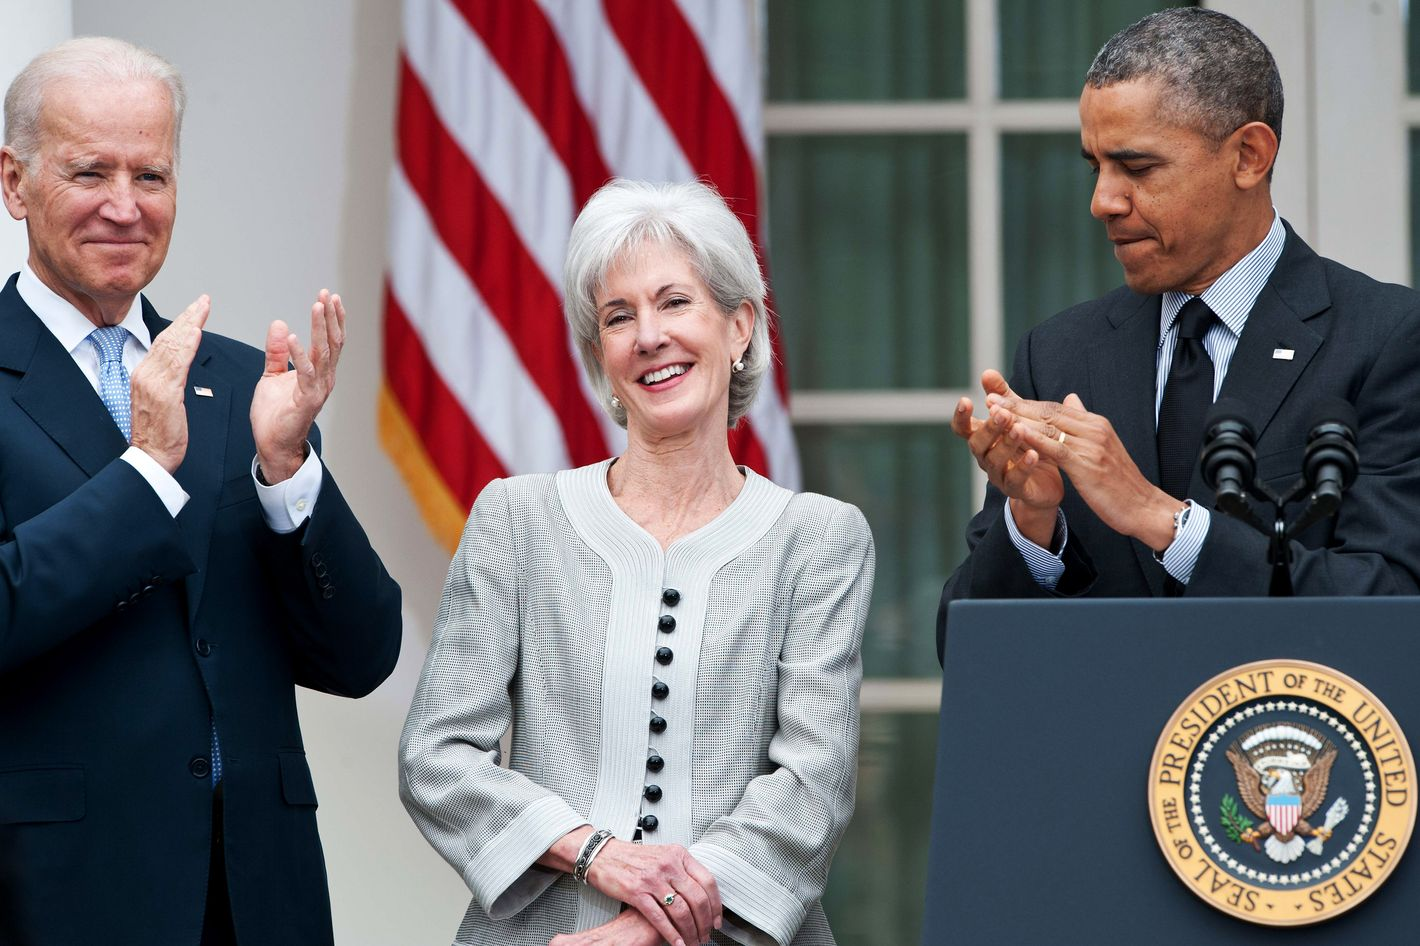 US President Barack Obama (R) and Vice President Joe Biden (L) applaud outgoing Heath and Human Services Secretary Kathleen Sebelius as Obama names Sylvia Mathews Burwell, his current budget director, to replace her in the Rose Garden at the White House in Washington,DC on April 11, 2014. Sebelius resigned, paying the price for the chaotic initial rollout of the US president's signature health care law.    AFP PHOTO/Nicholas KAMM        (Photo credit should read NICHOLAS KAMM/AFP/Getty Images)